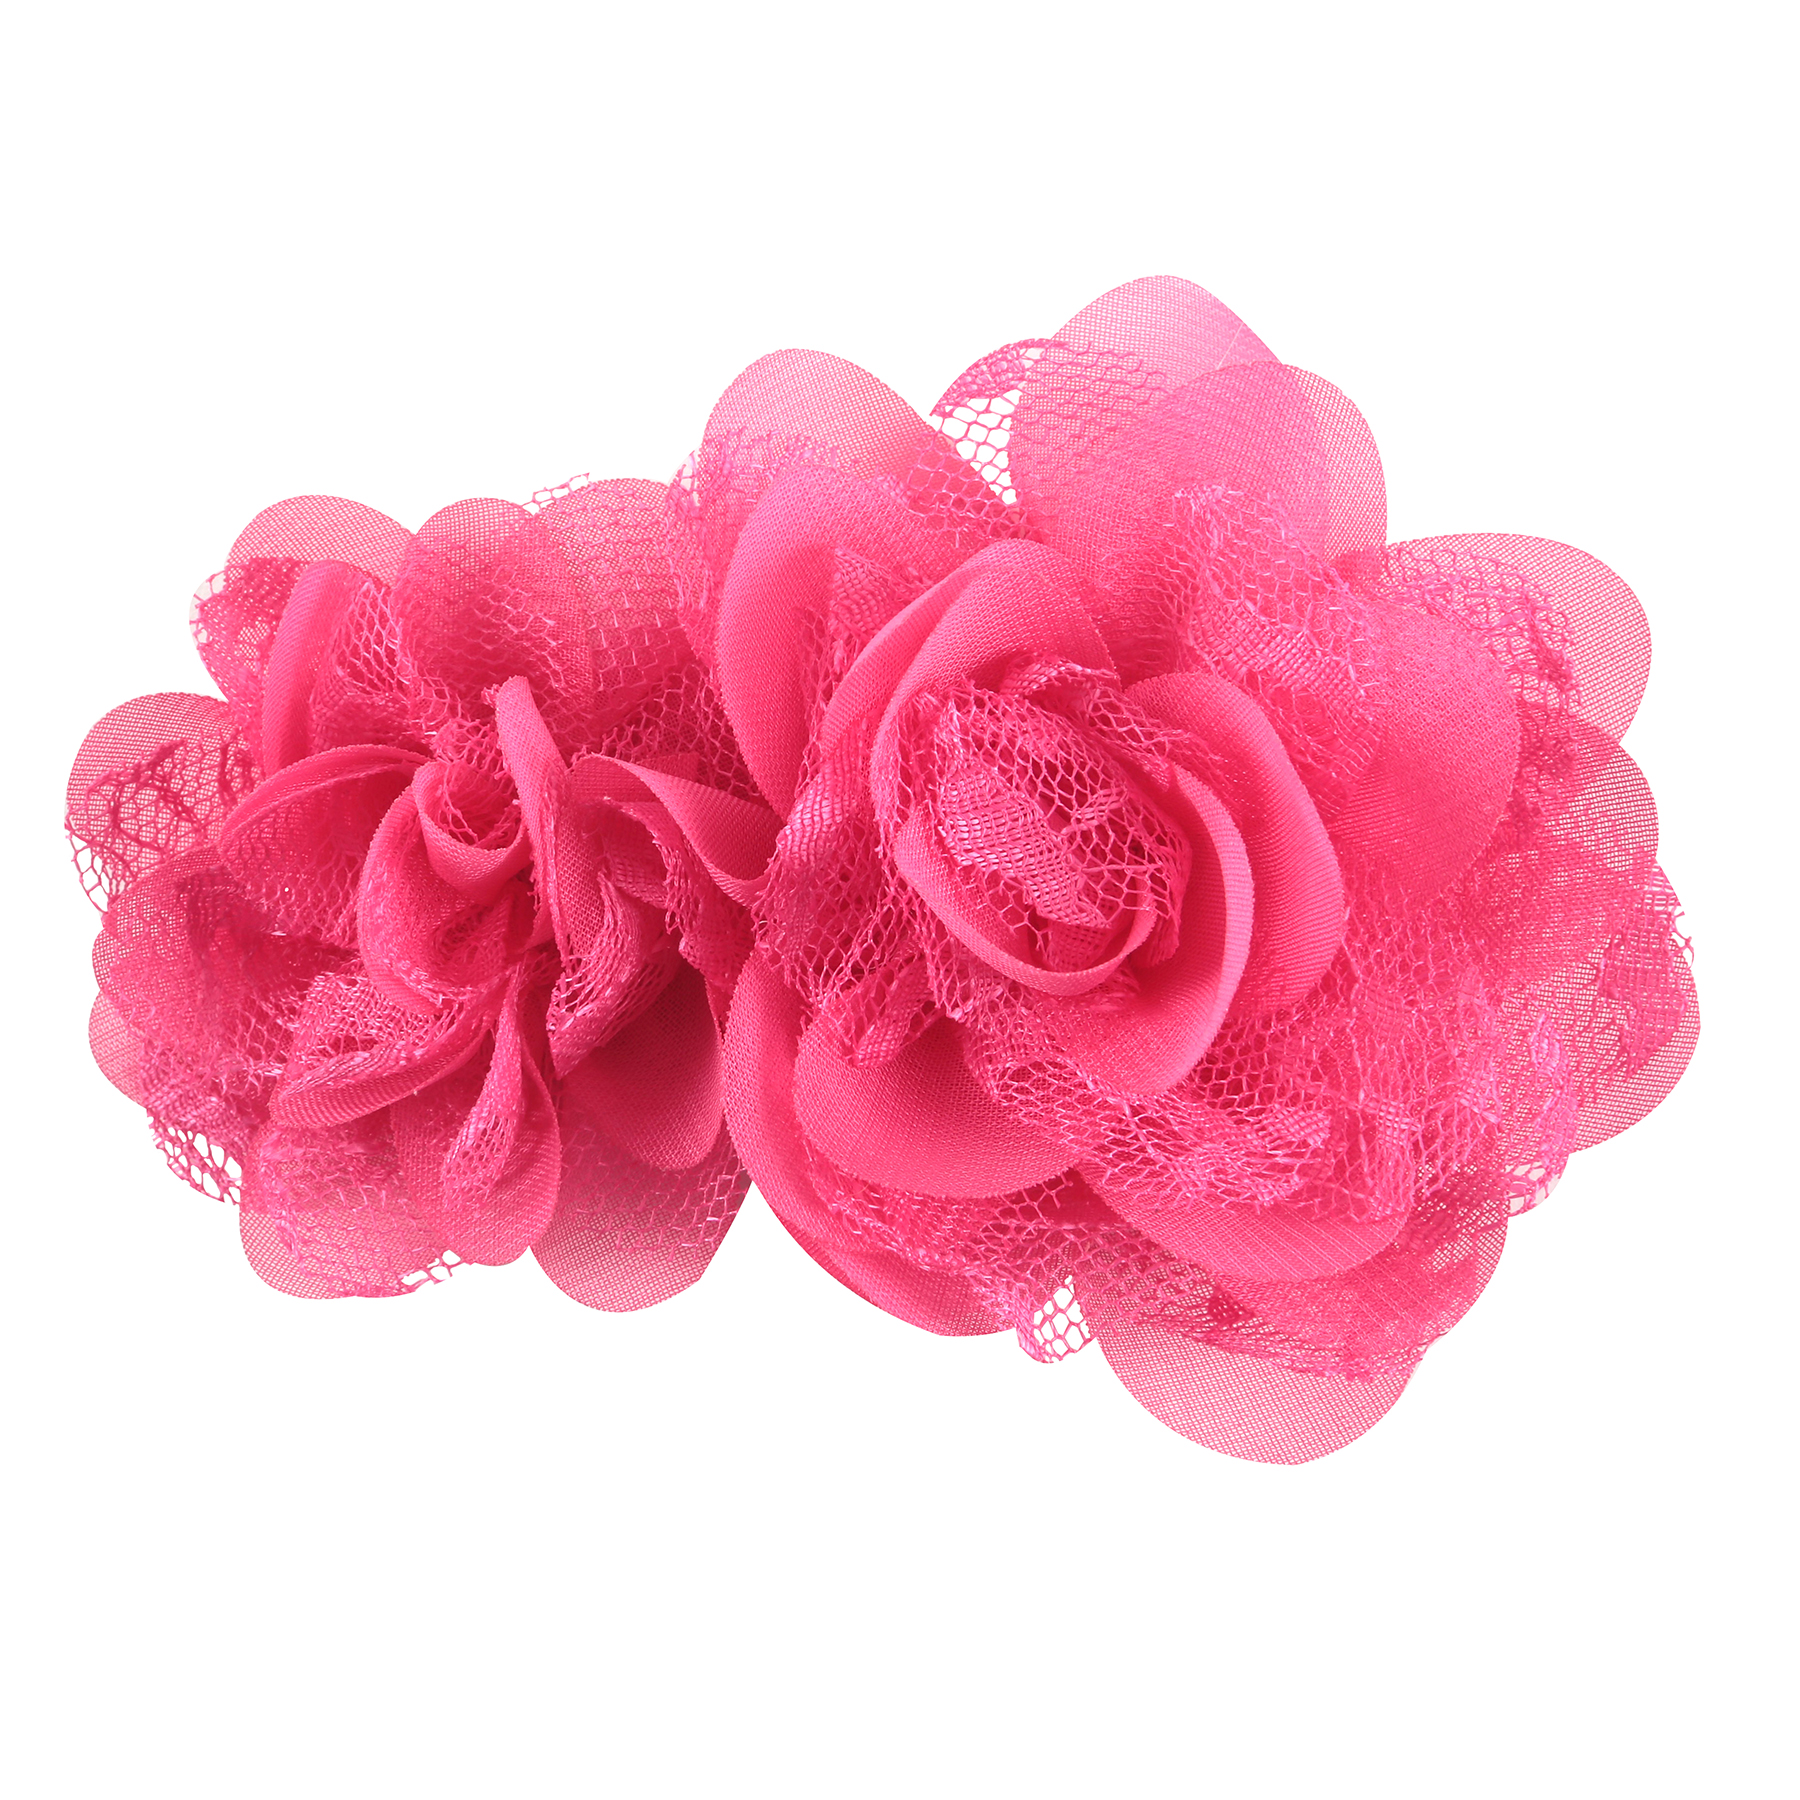 OFFRAY ACCESSORY HOT PINK CHIFFON LACE FLOWERS 2 PIECES